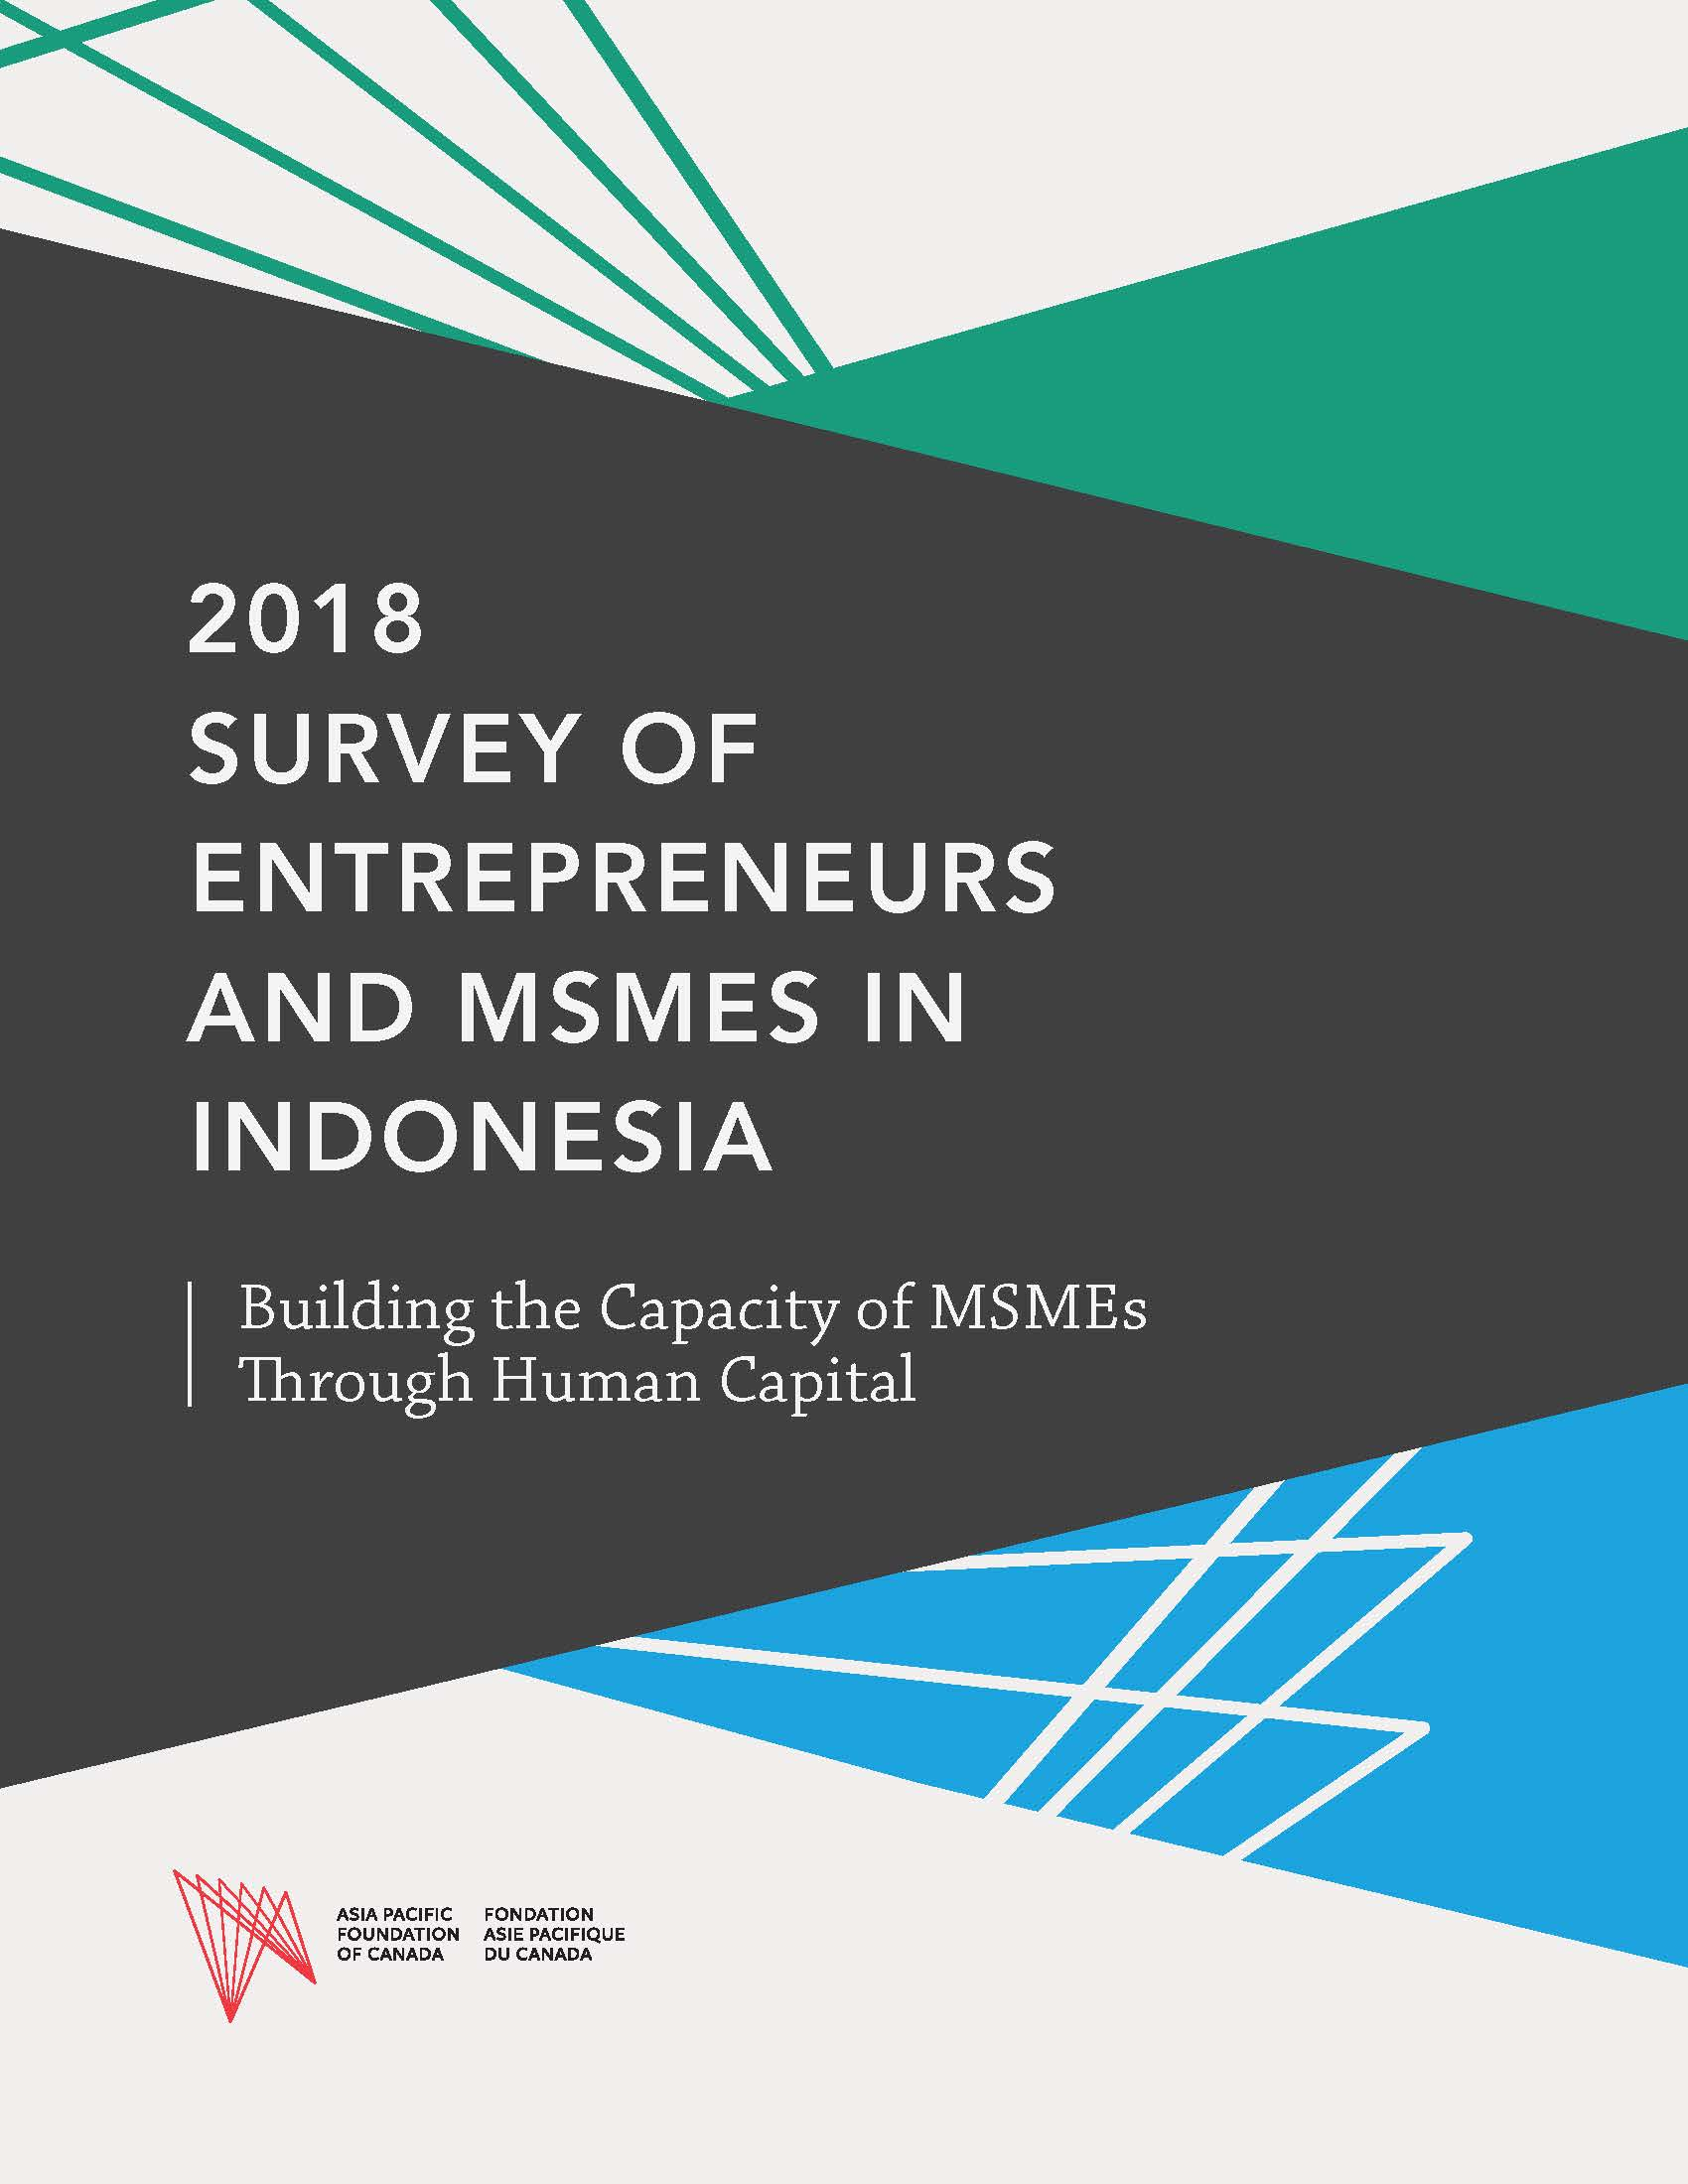 2018 Survey of Entrepreneurs and MSMEs in Indonesia_0_Page_01